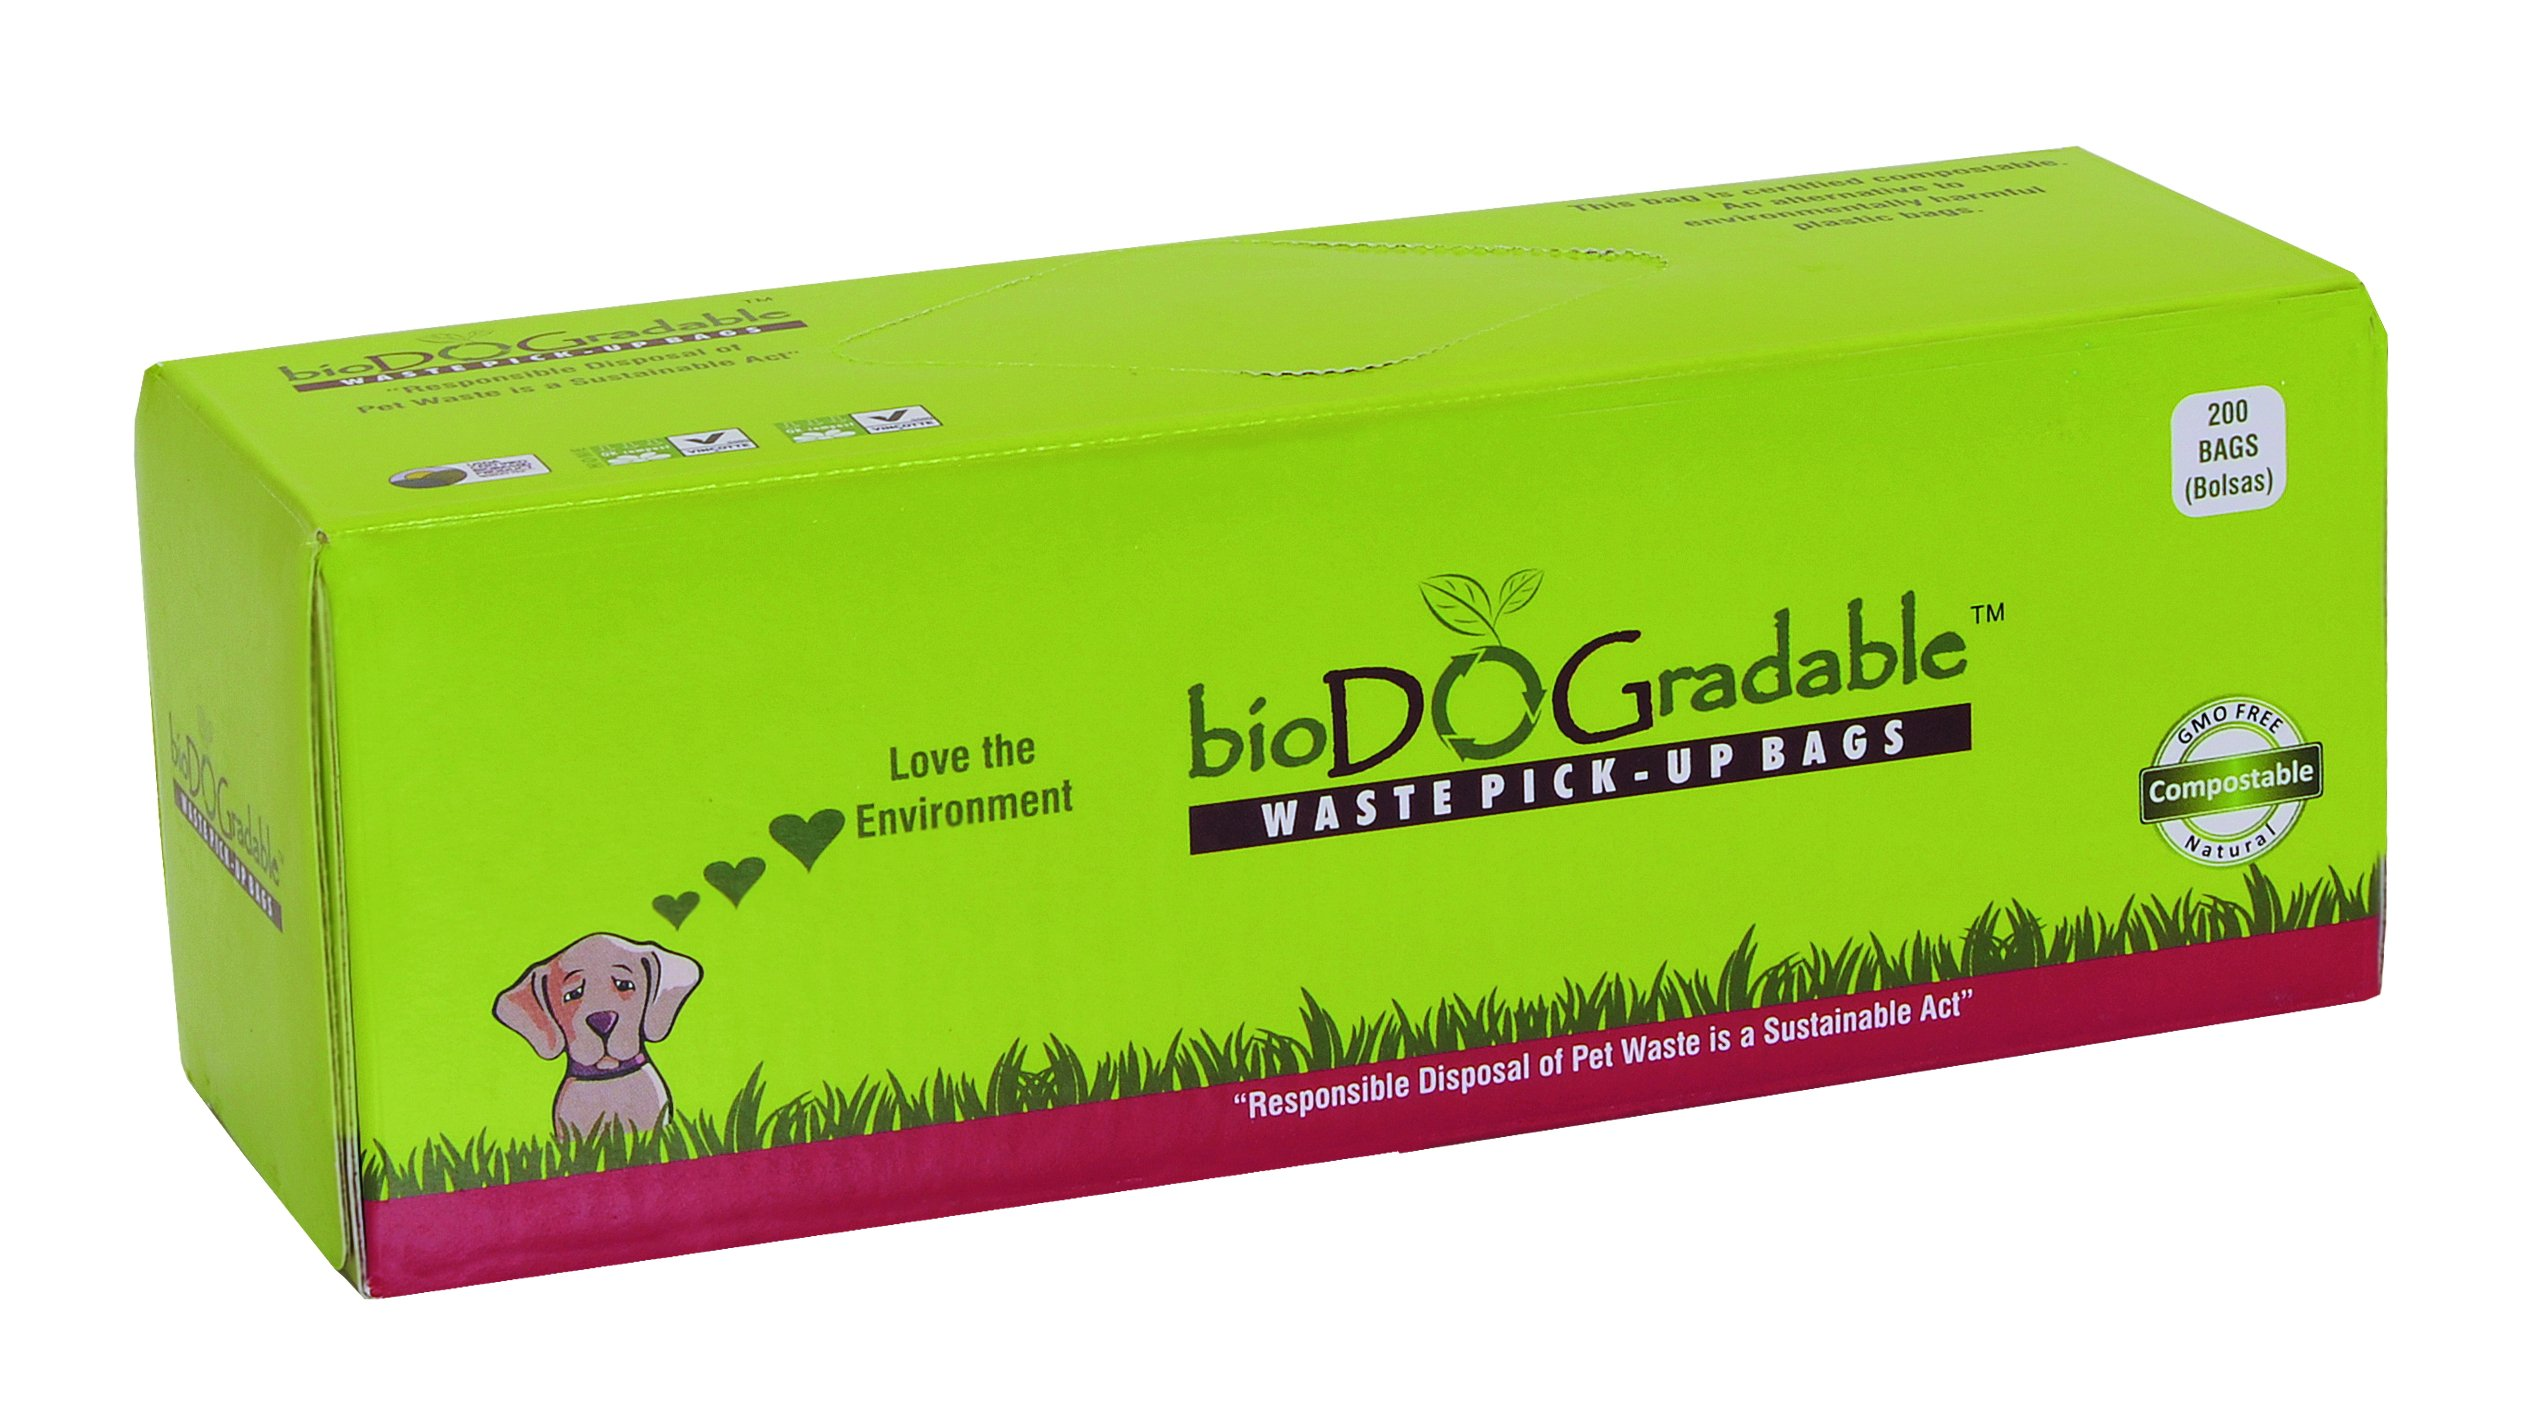 bioDOGradable Poop Bags Dog Waste Bags, Not Made from Plastic (8000 Bags)